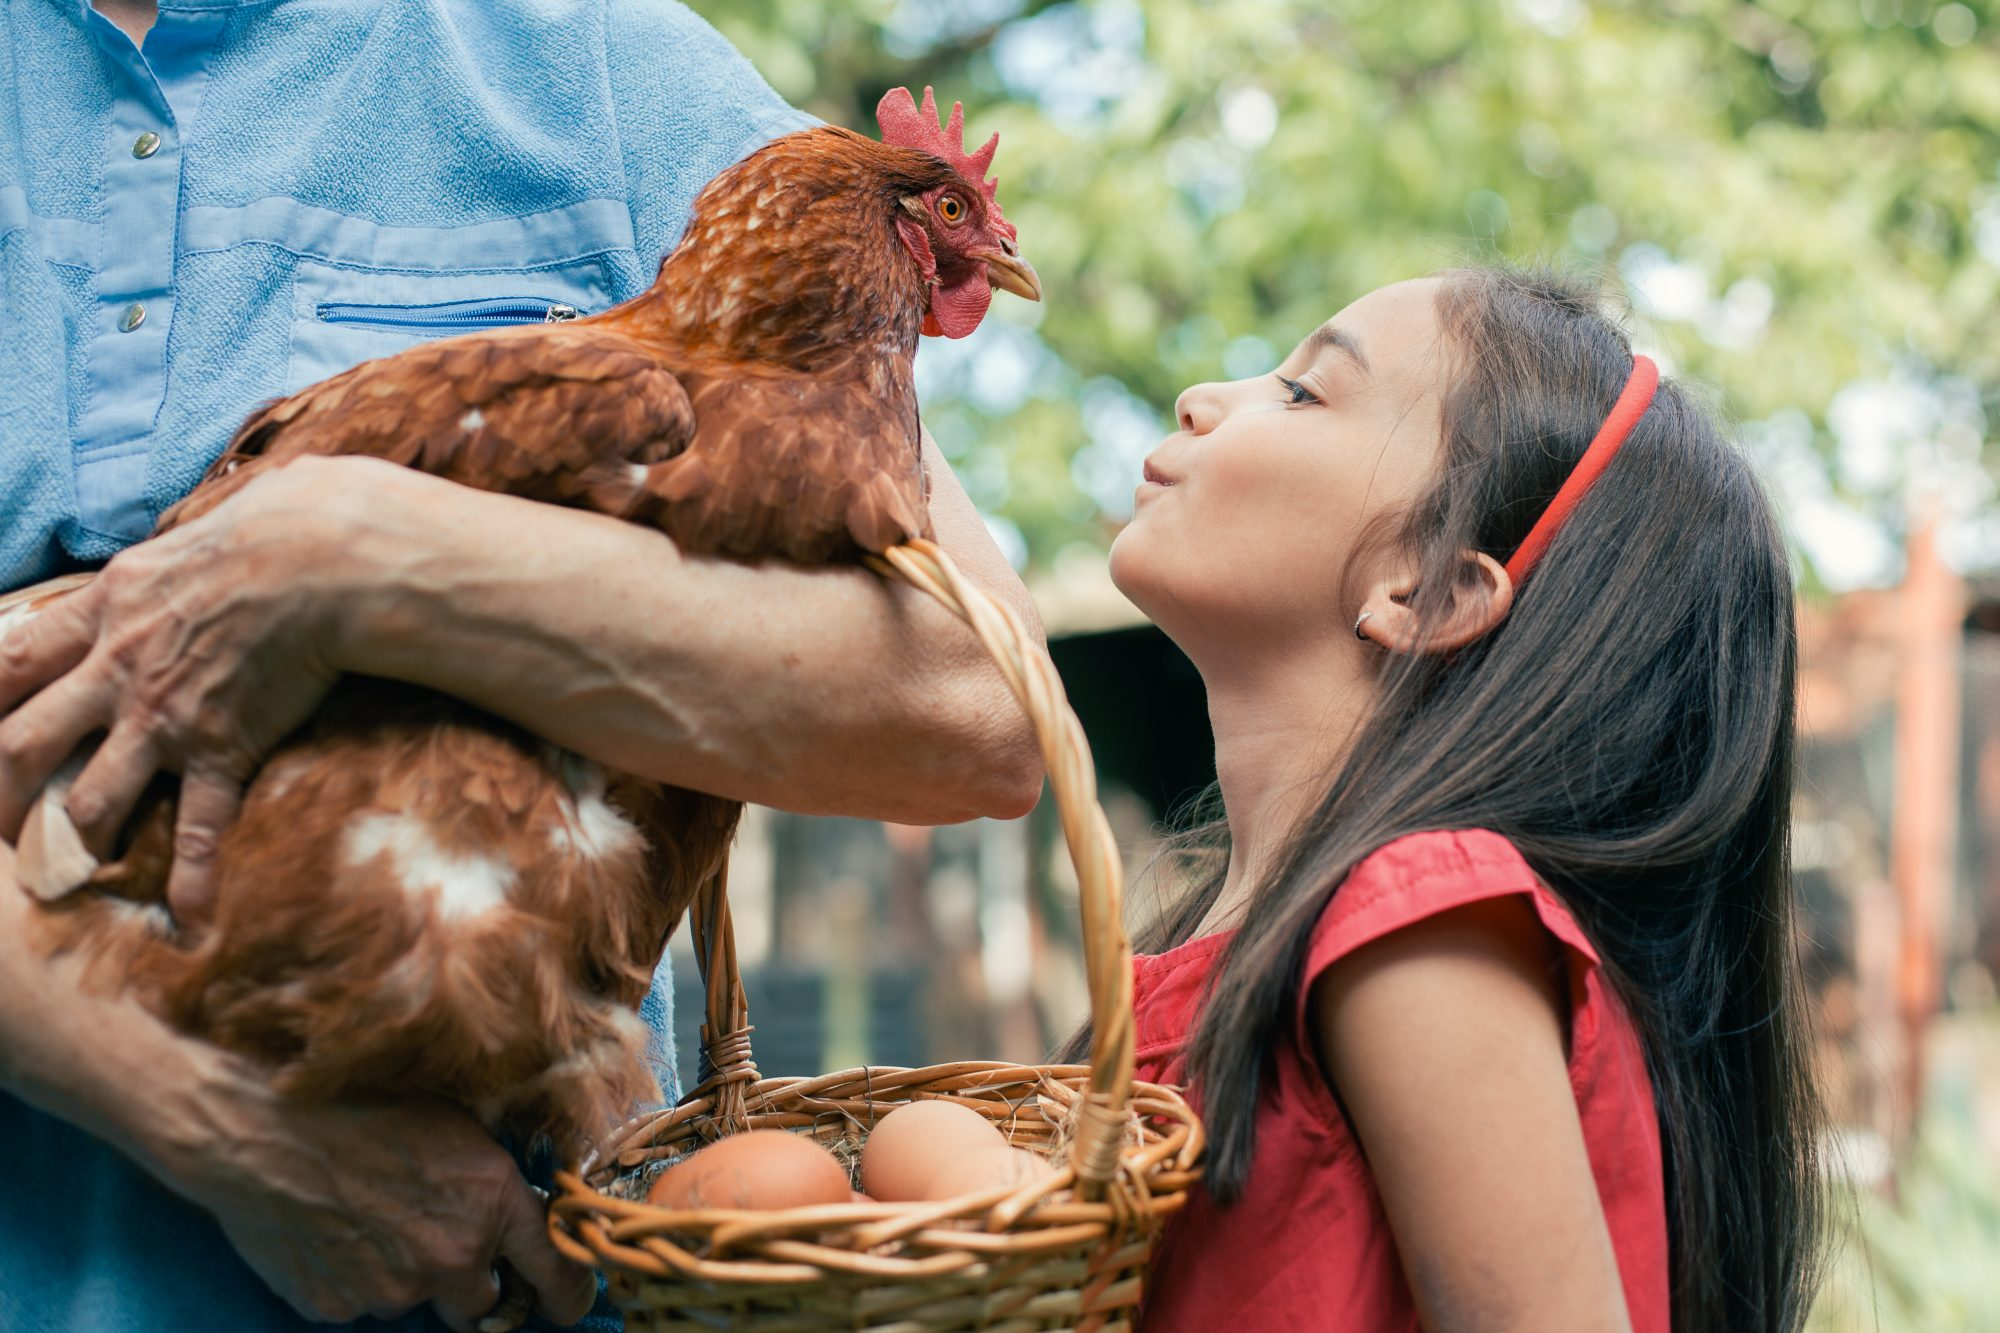 young girl leans forward to kiss a chicken another person is holding